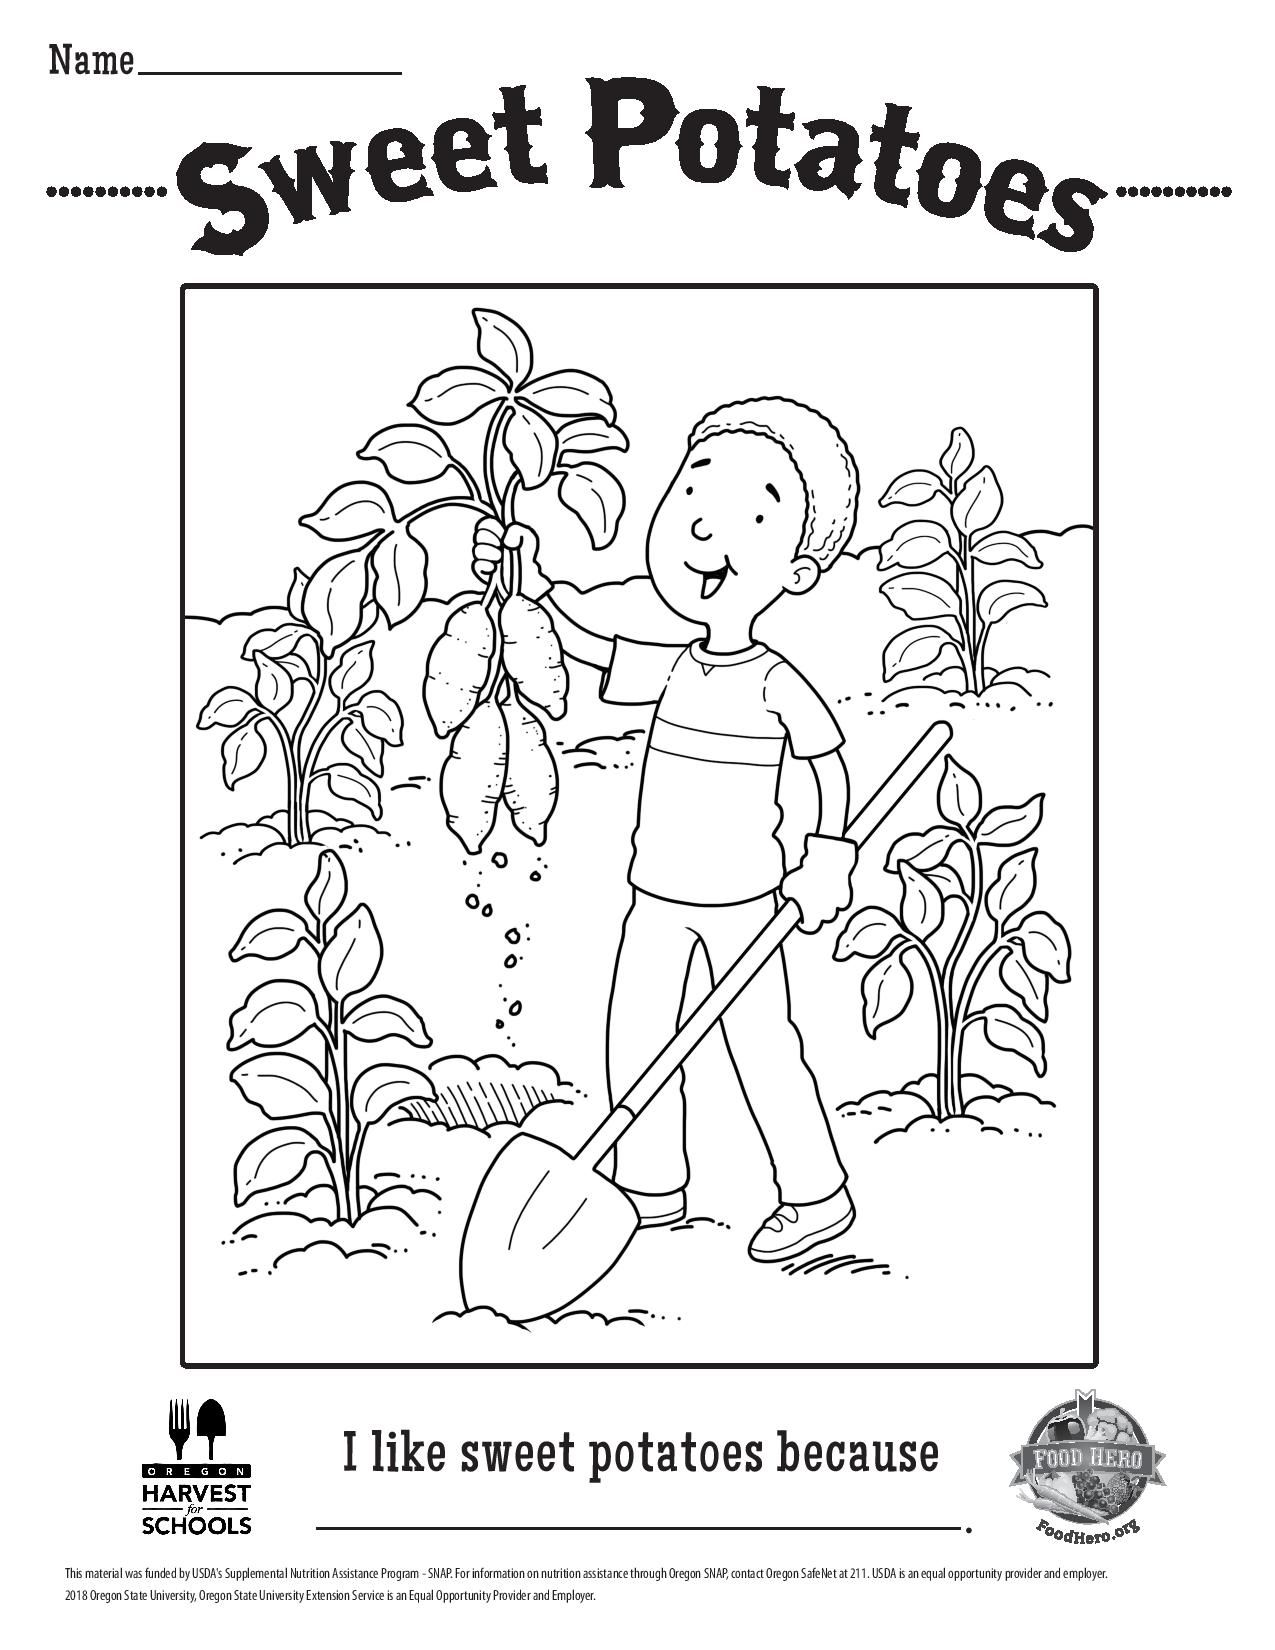 Free Coloring Sheet Sweet Potatoes Sweet Potato Potatoes